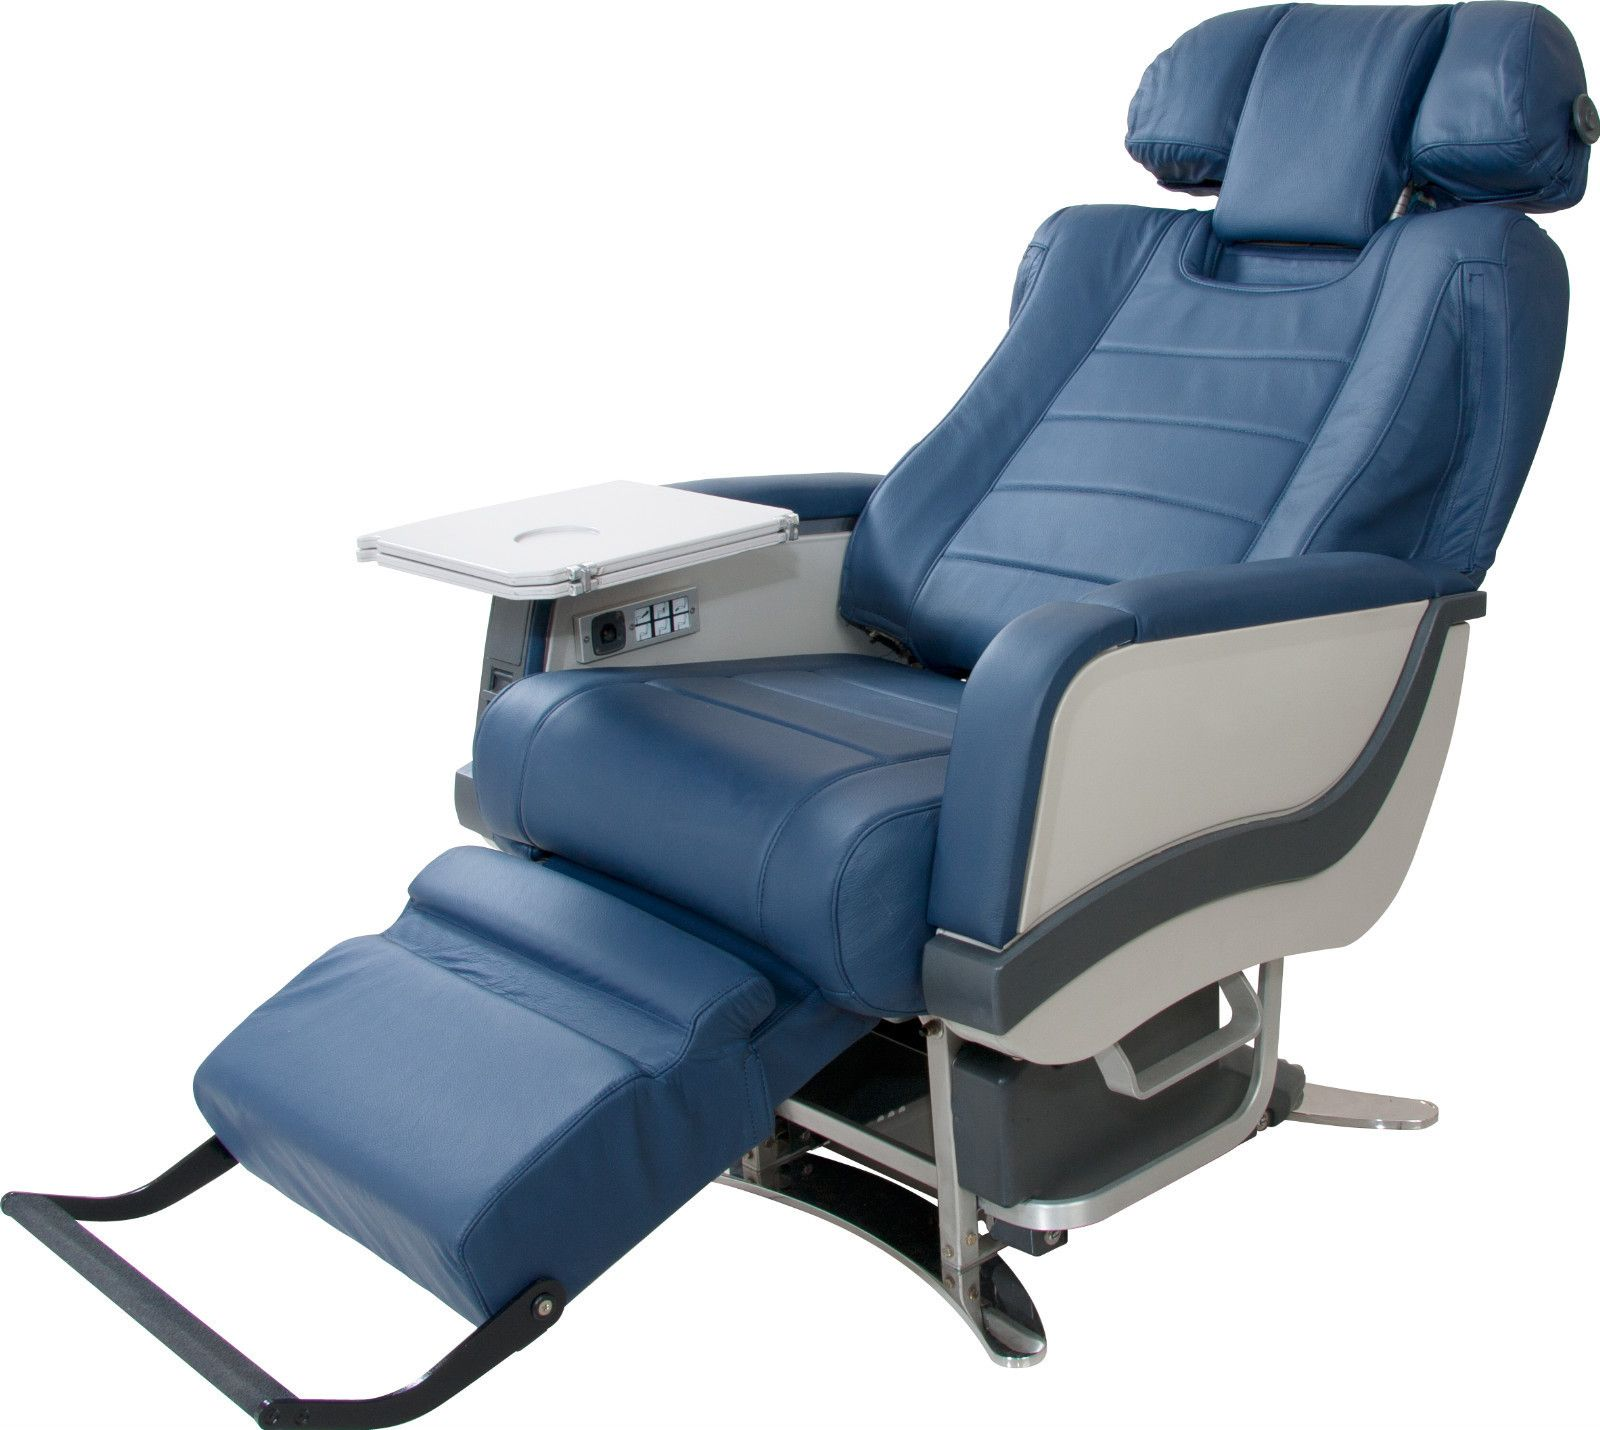 Details about SkyLine First Class Aircraft Seat  Genuine